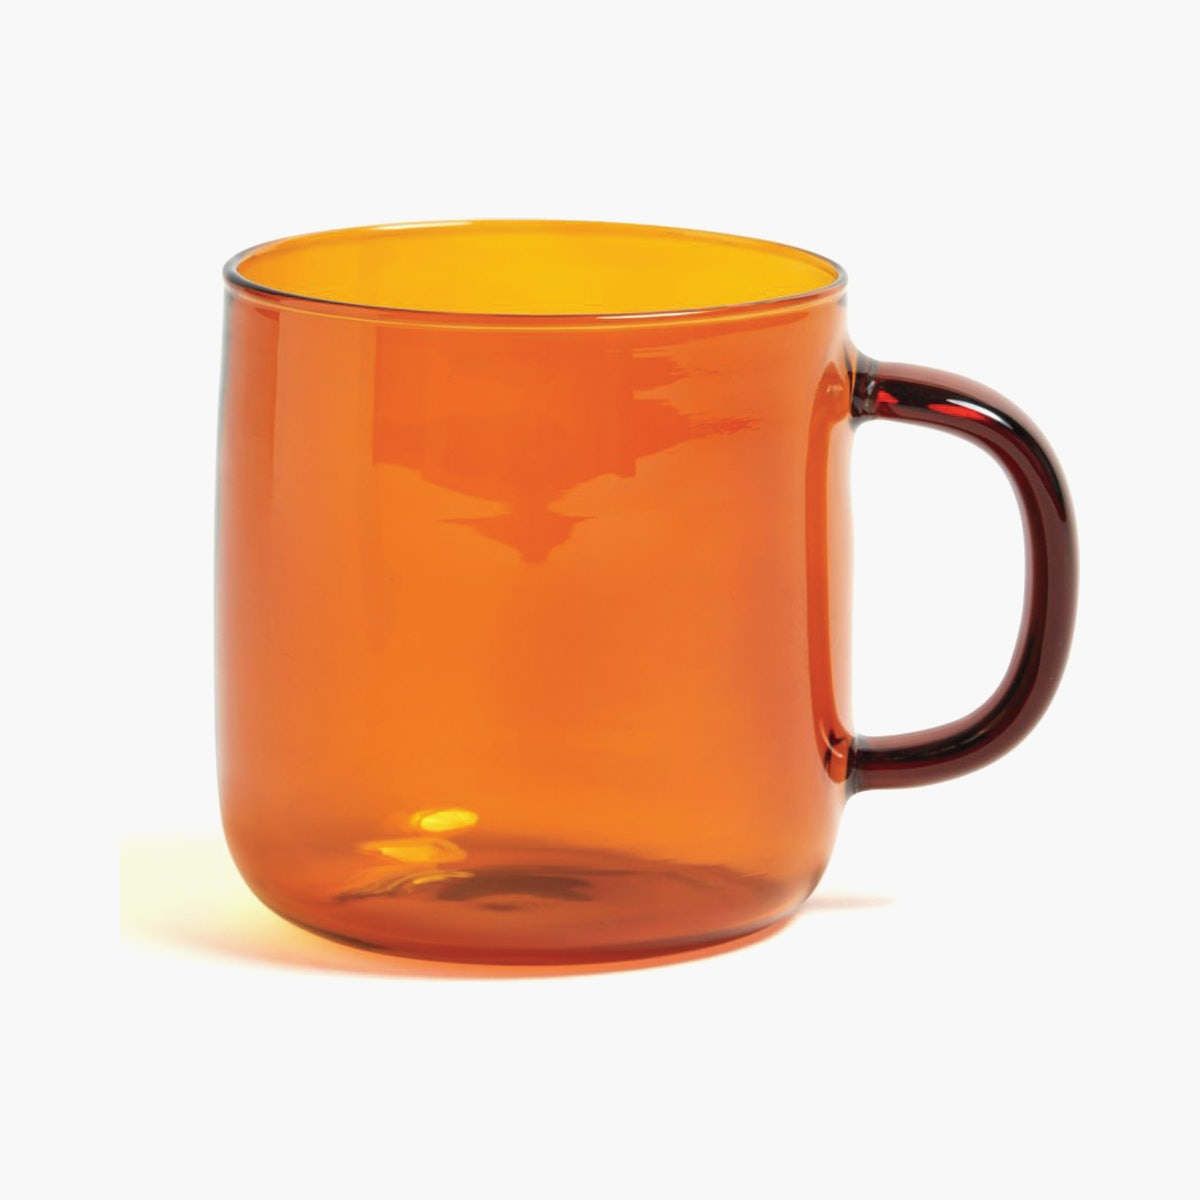 Borosilicate Mug - Set of 2